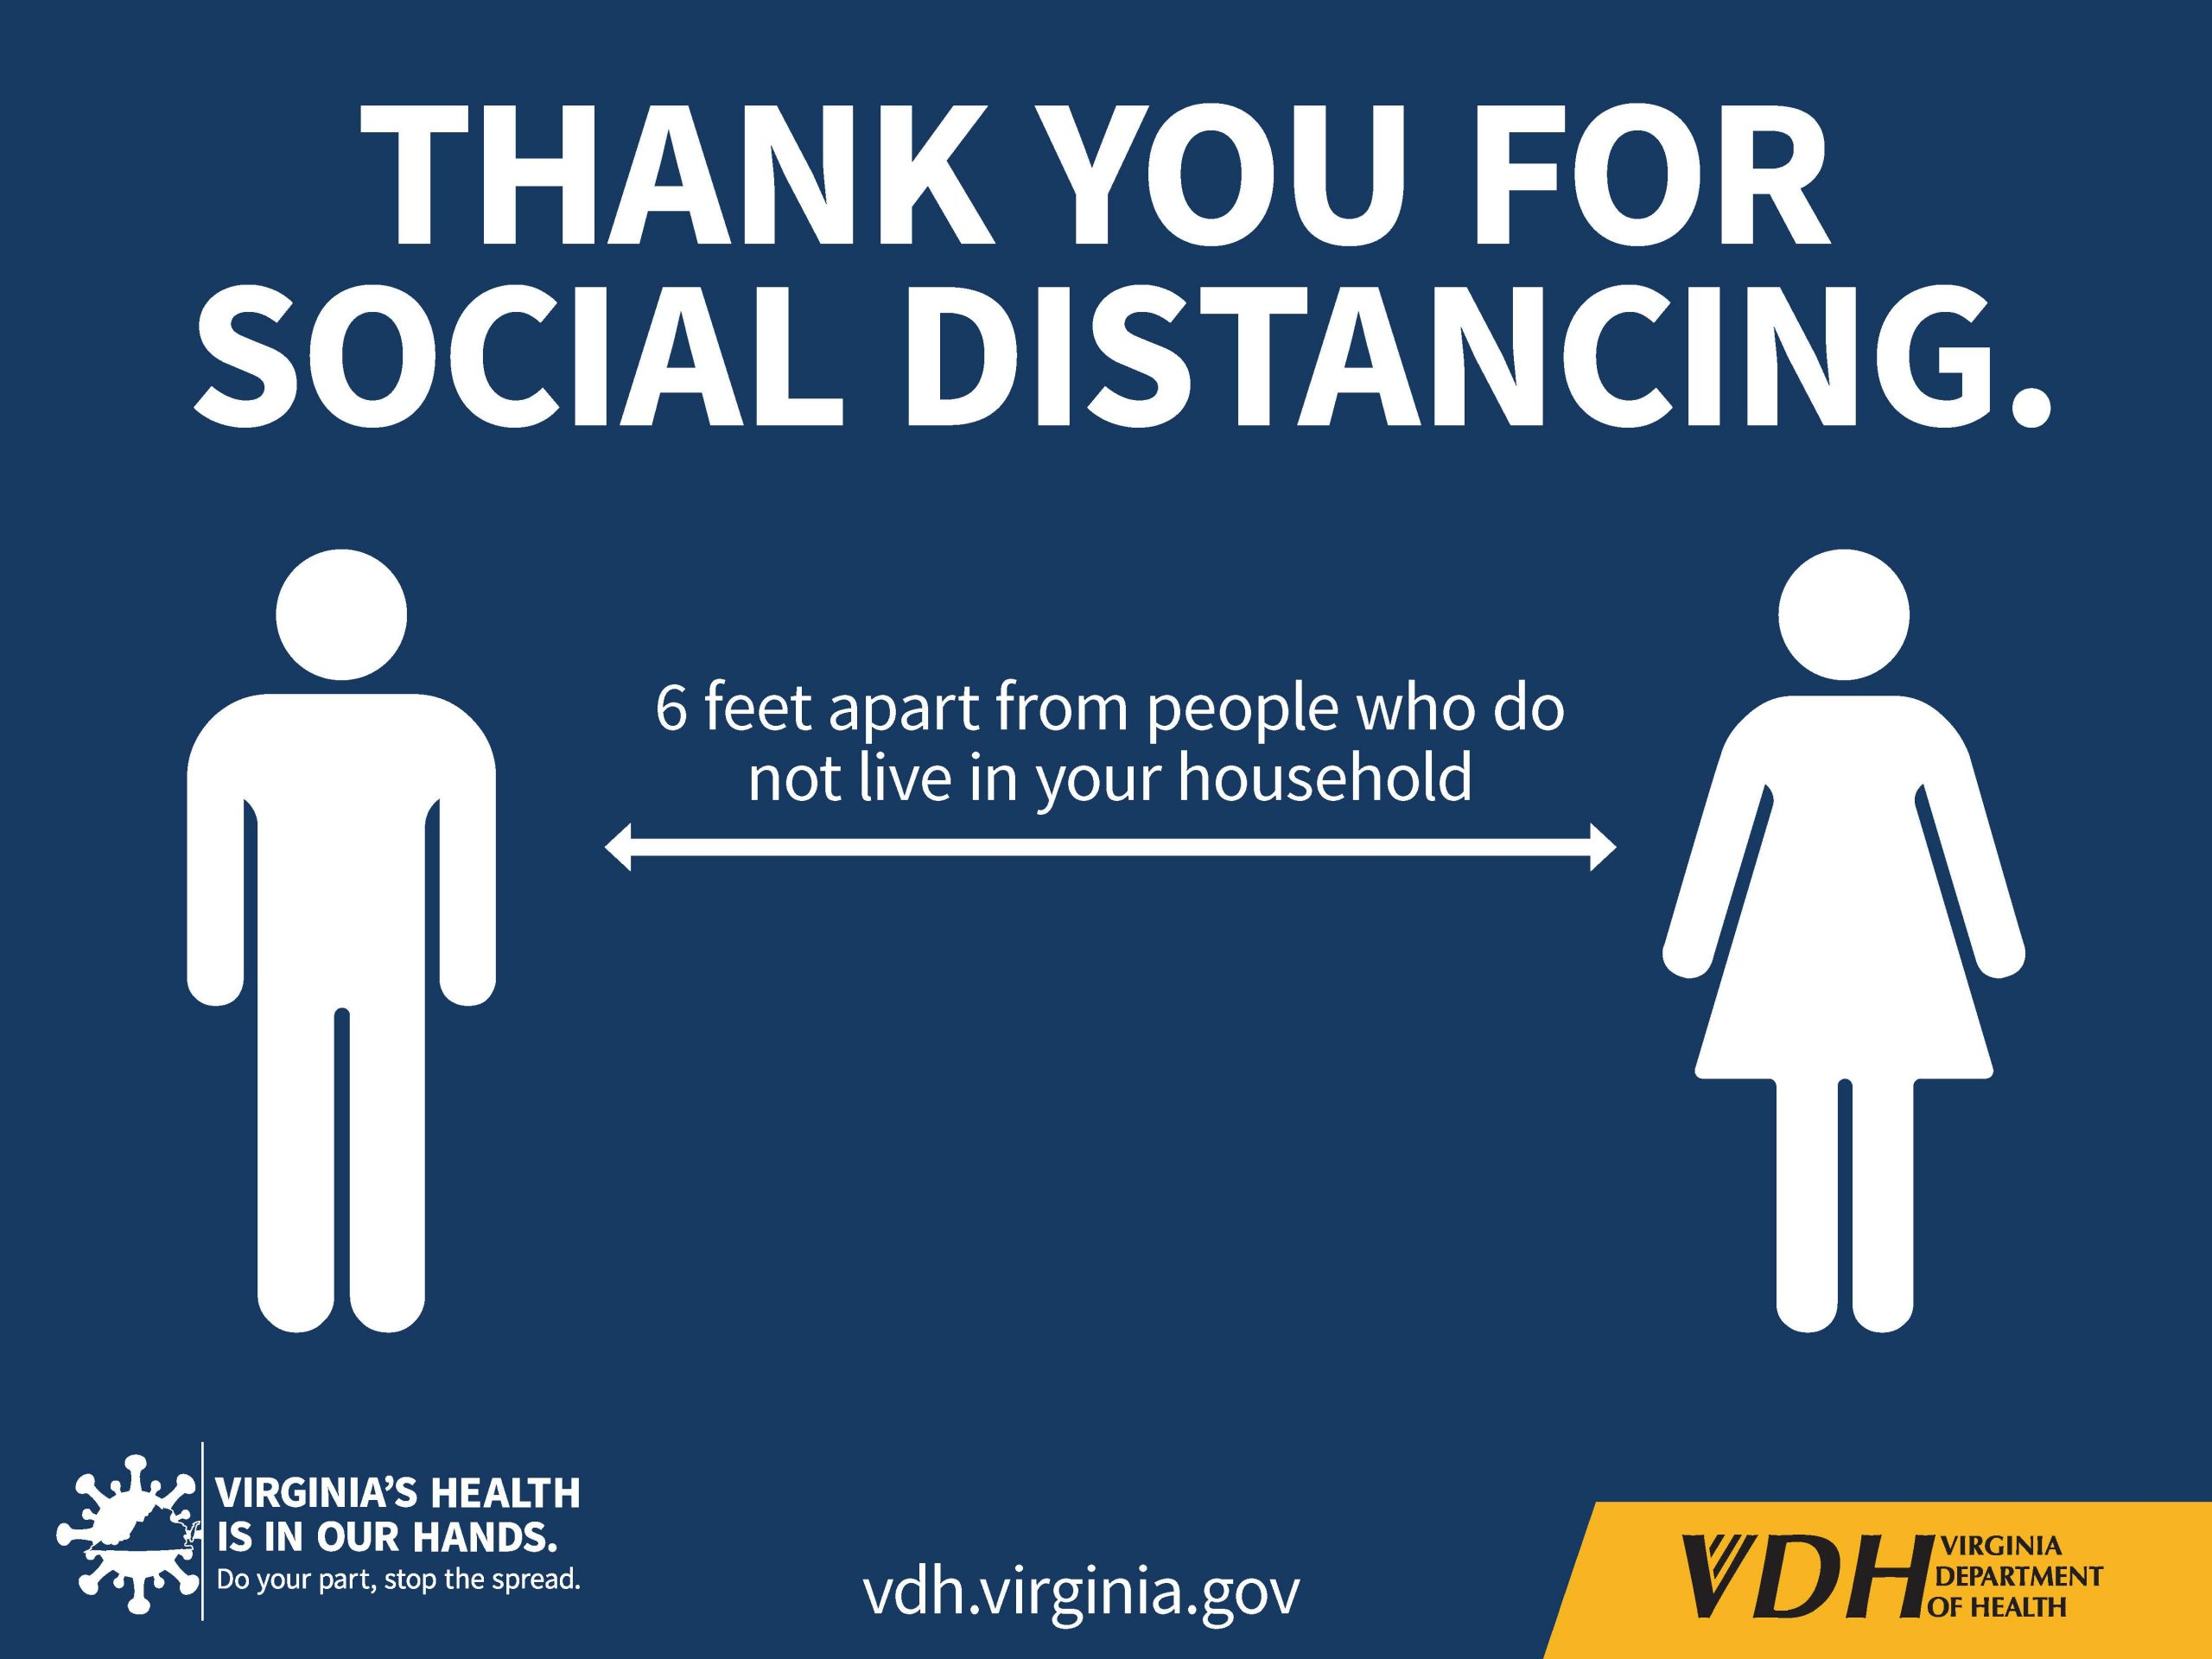 Thank you for social distancing sign